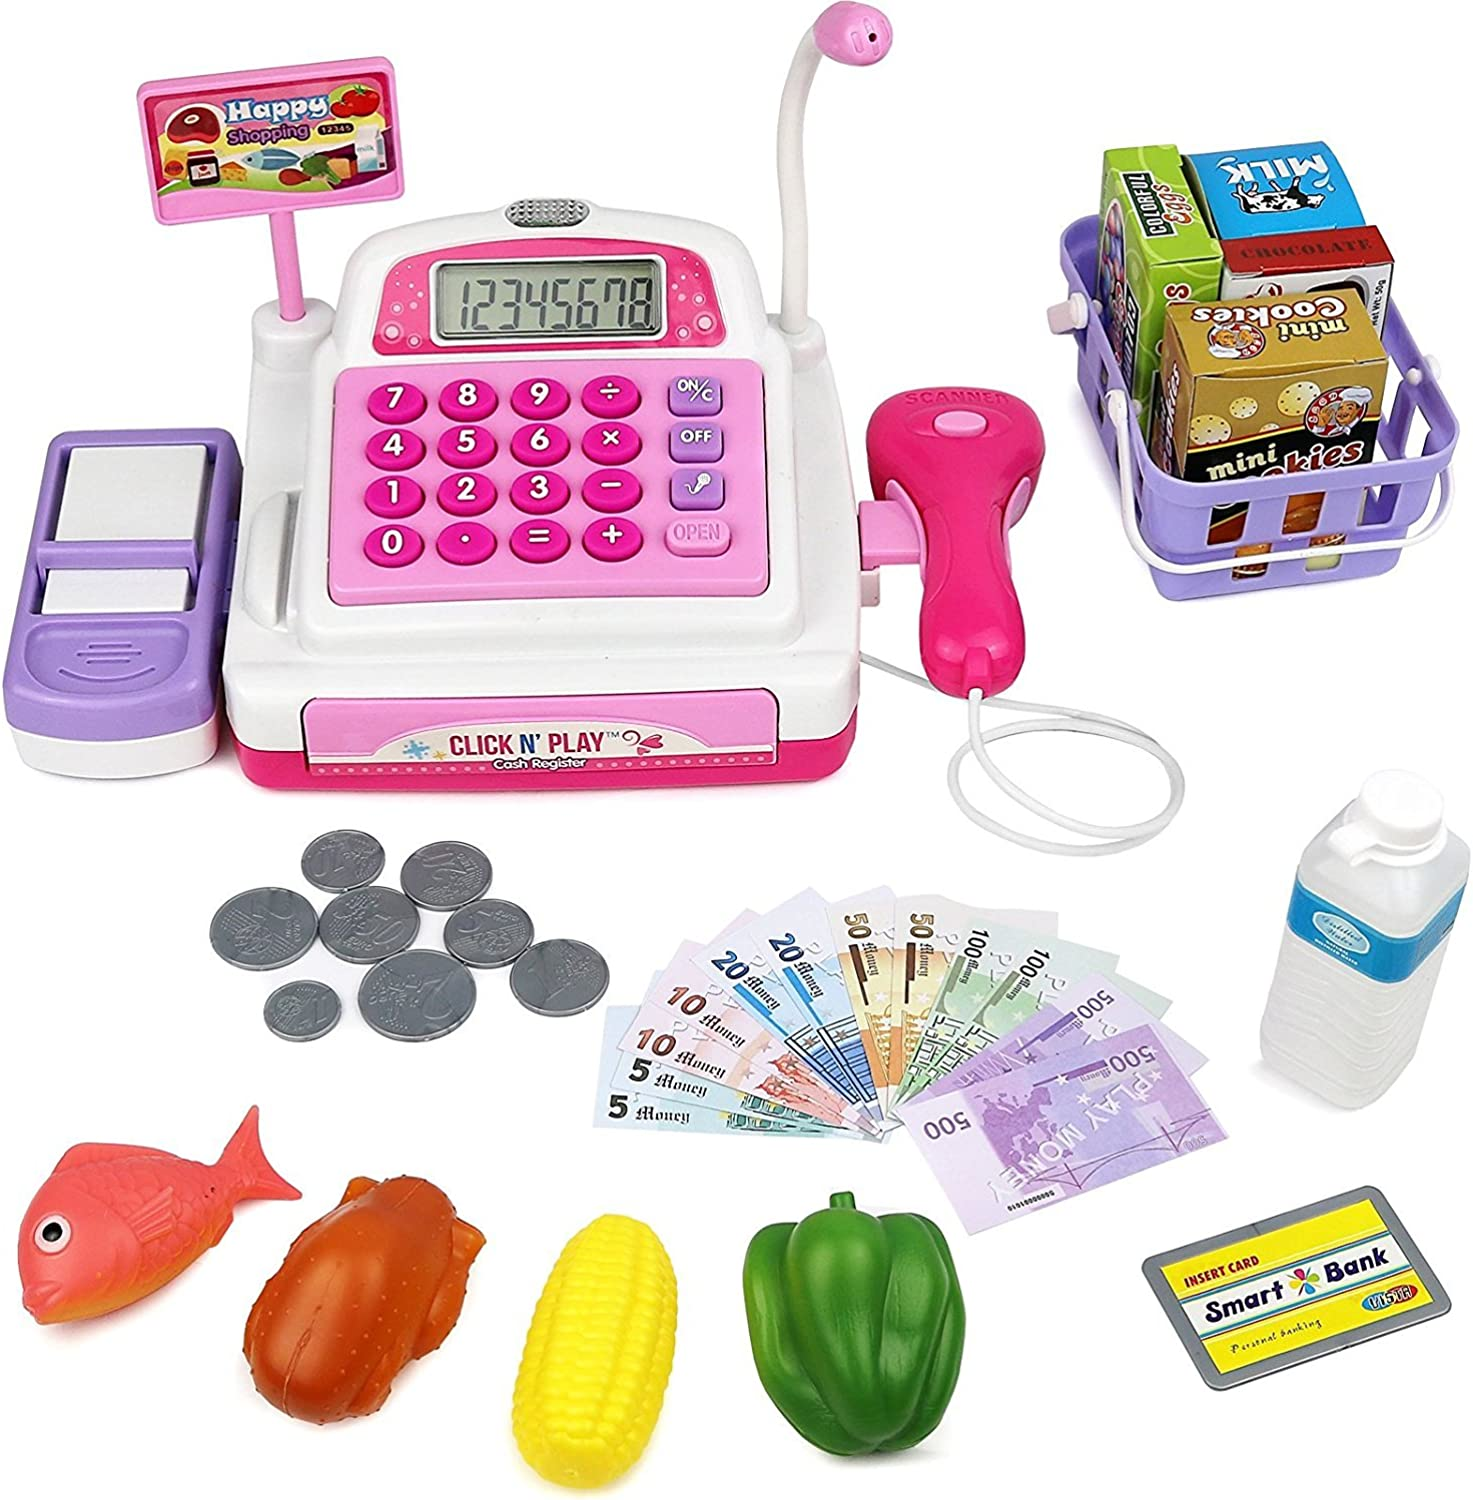 Click N' Play CNP0298 Pretend Play Electronic Calculator Cash Register with Realistic Actions & Sounds (Pink) Toy